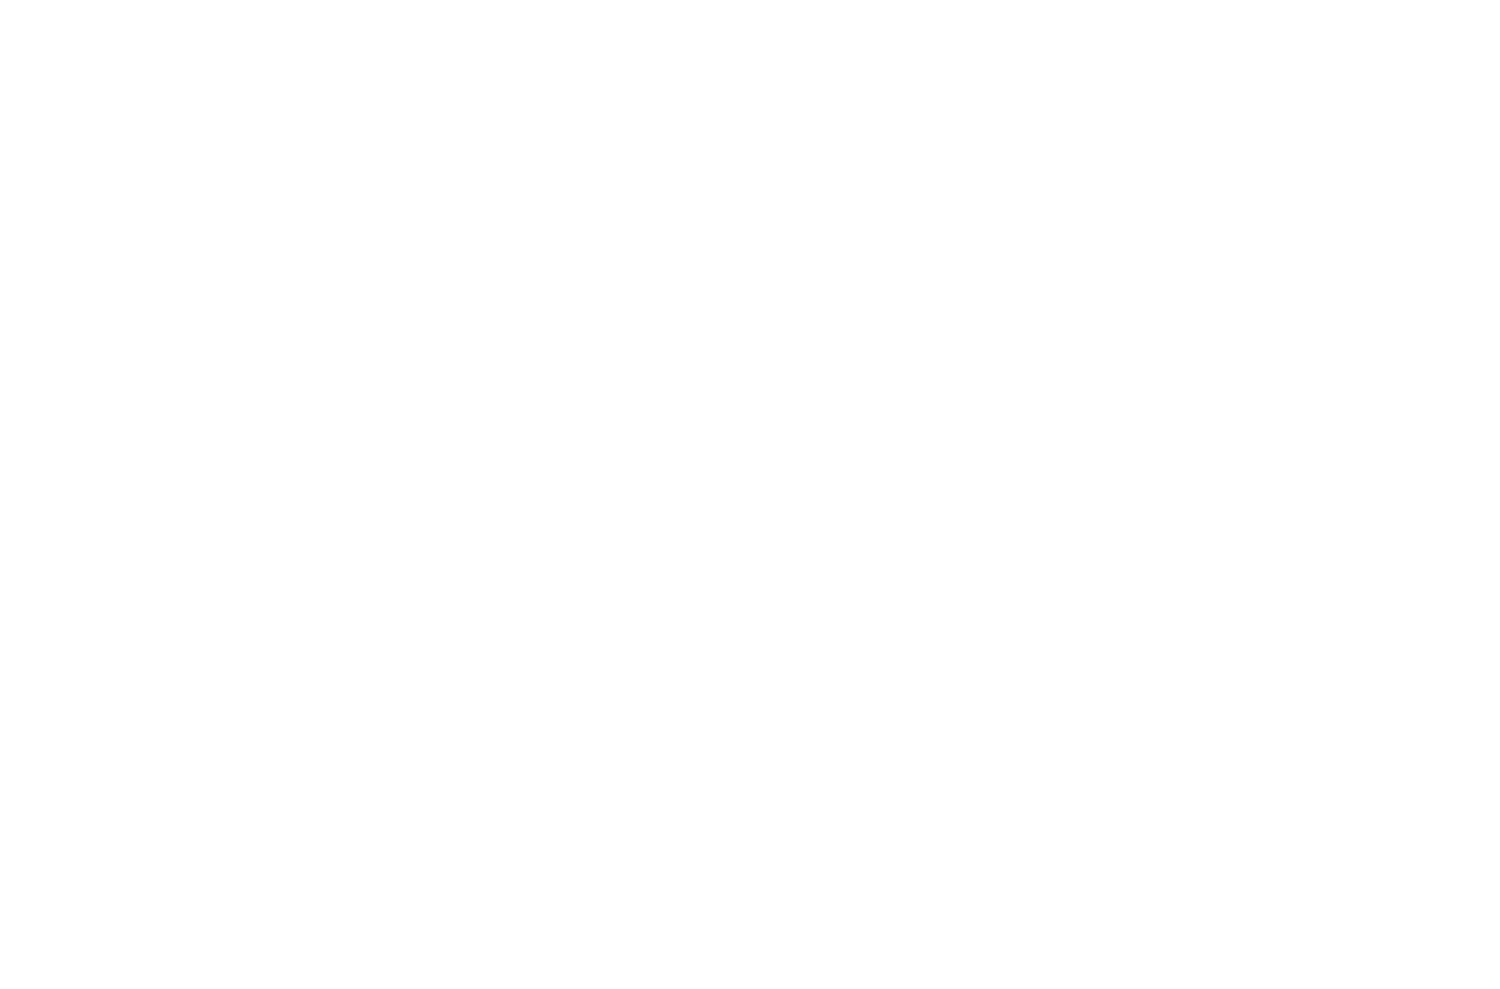 AGORA IMAGE - 3D And 2D Art Outsourcing For Games And Films